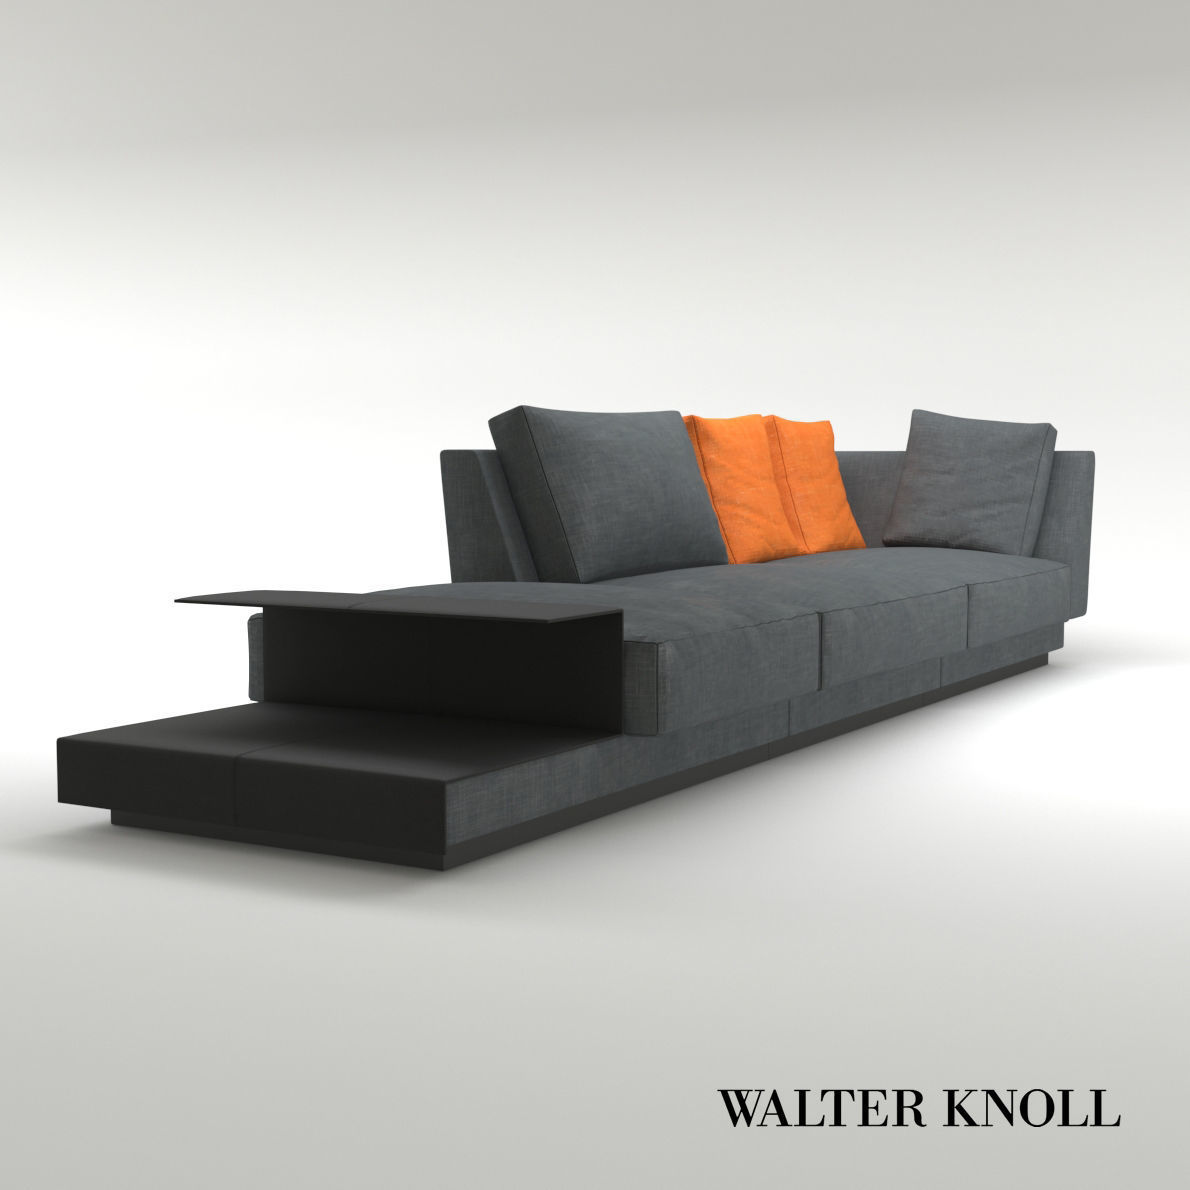 Walter Knoll Sofa Sofa Grand Suite From Walter Knoll Design By Eoos 3d Model